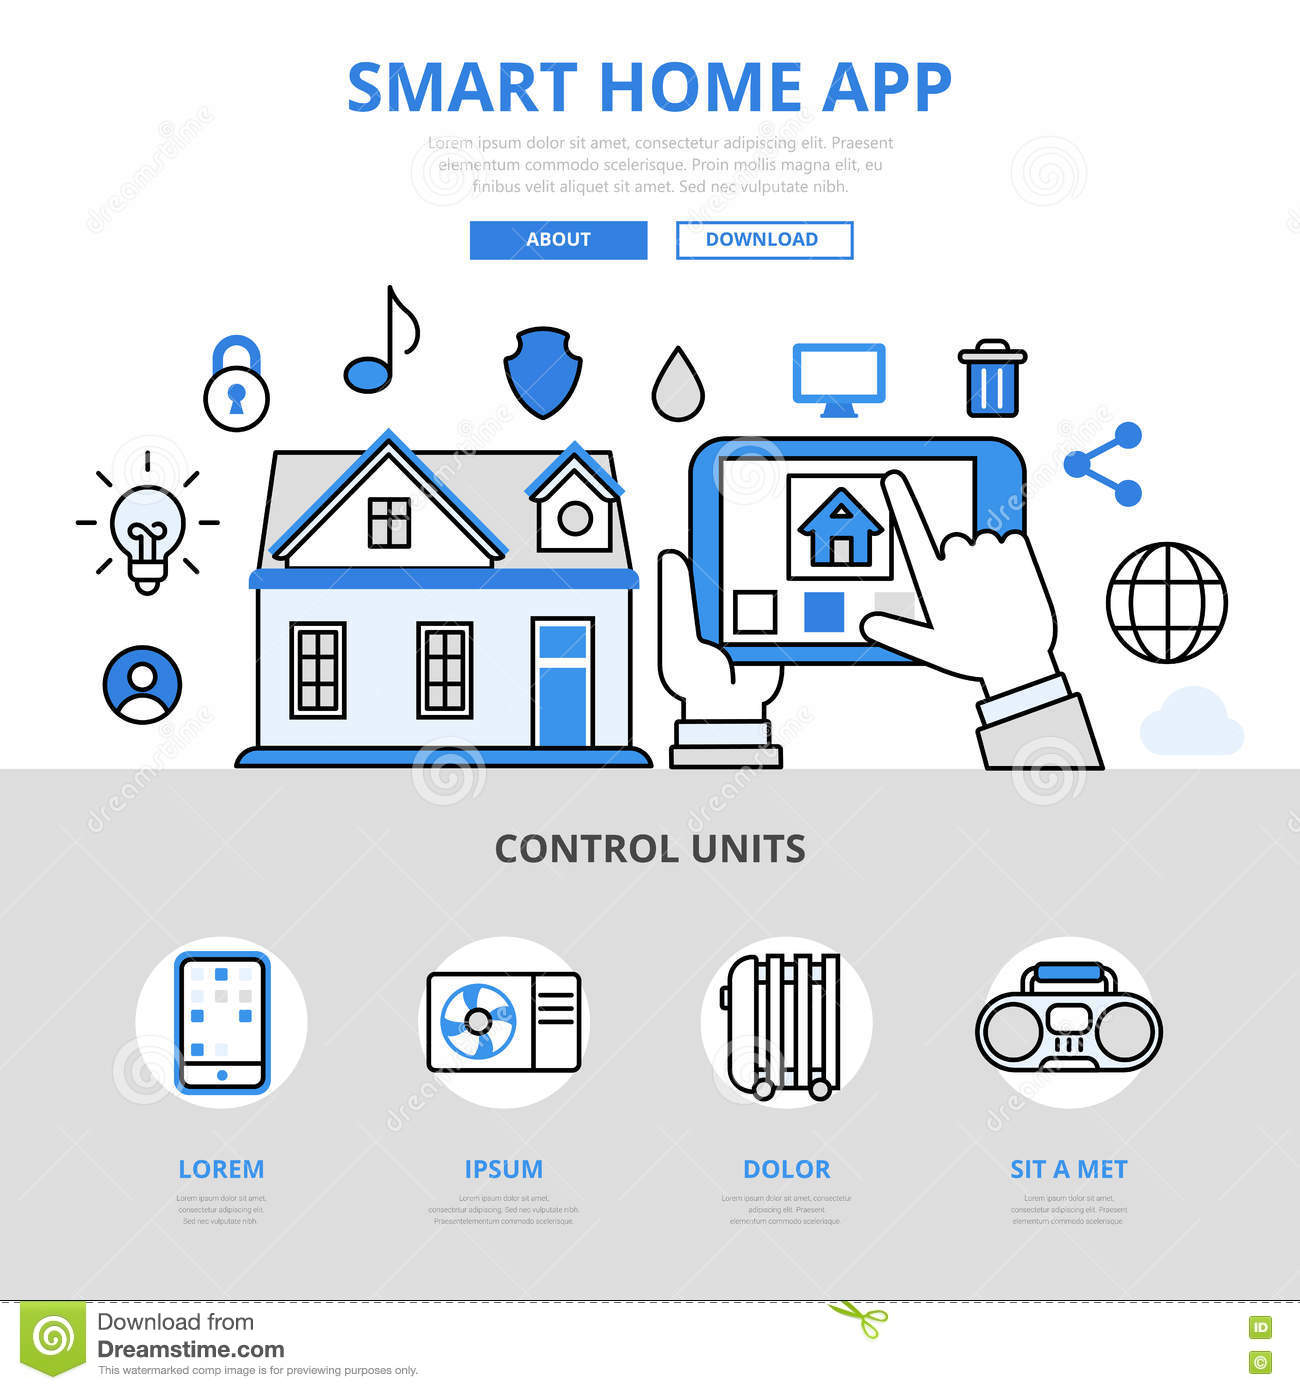 Smarthome App Smart Home Art Small House Interior Design